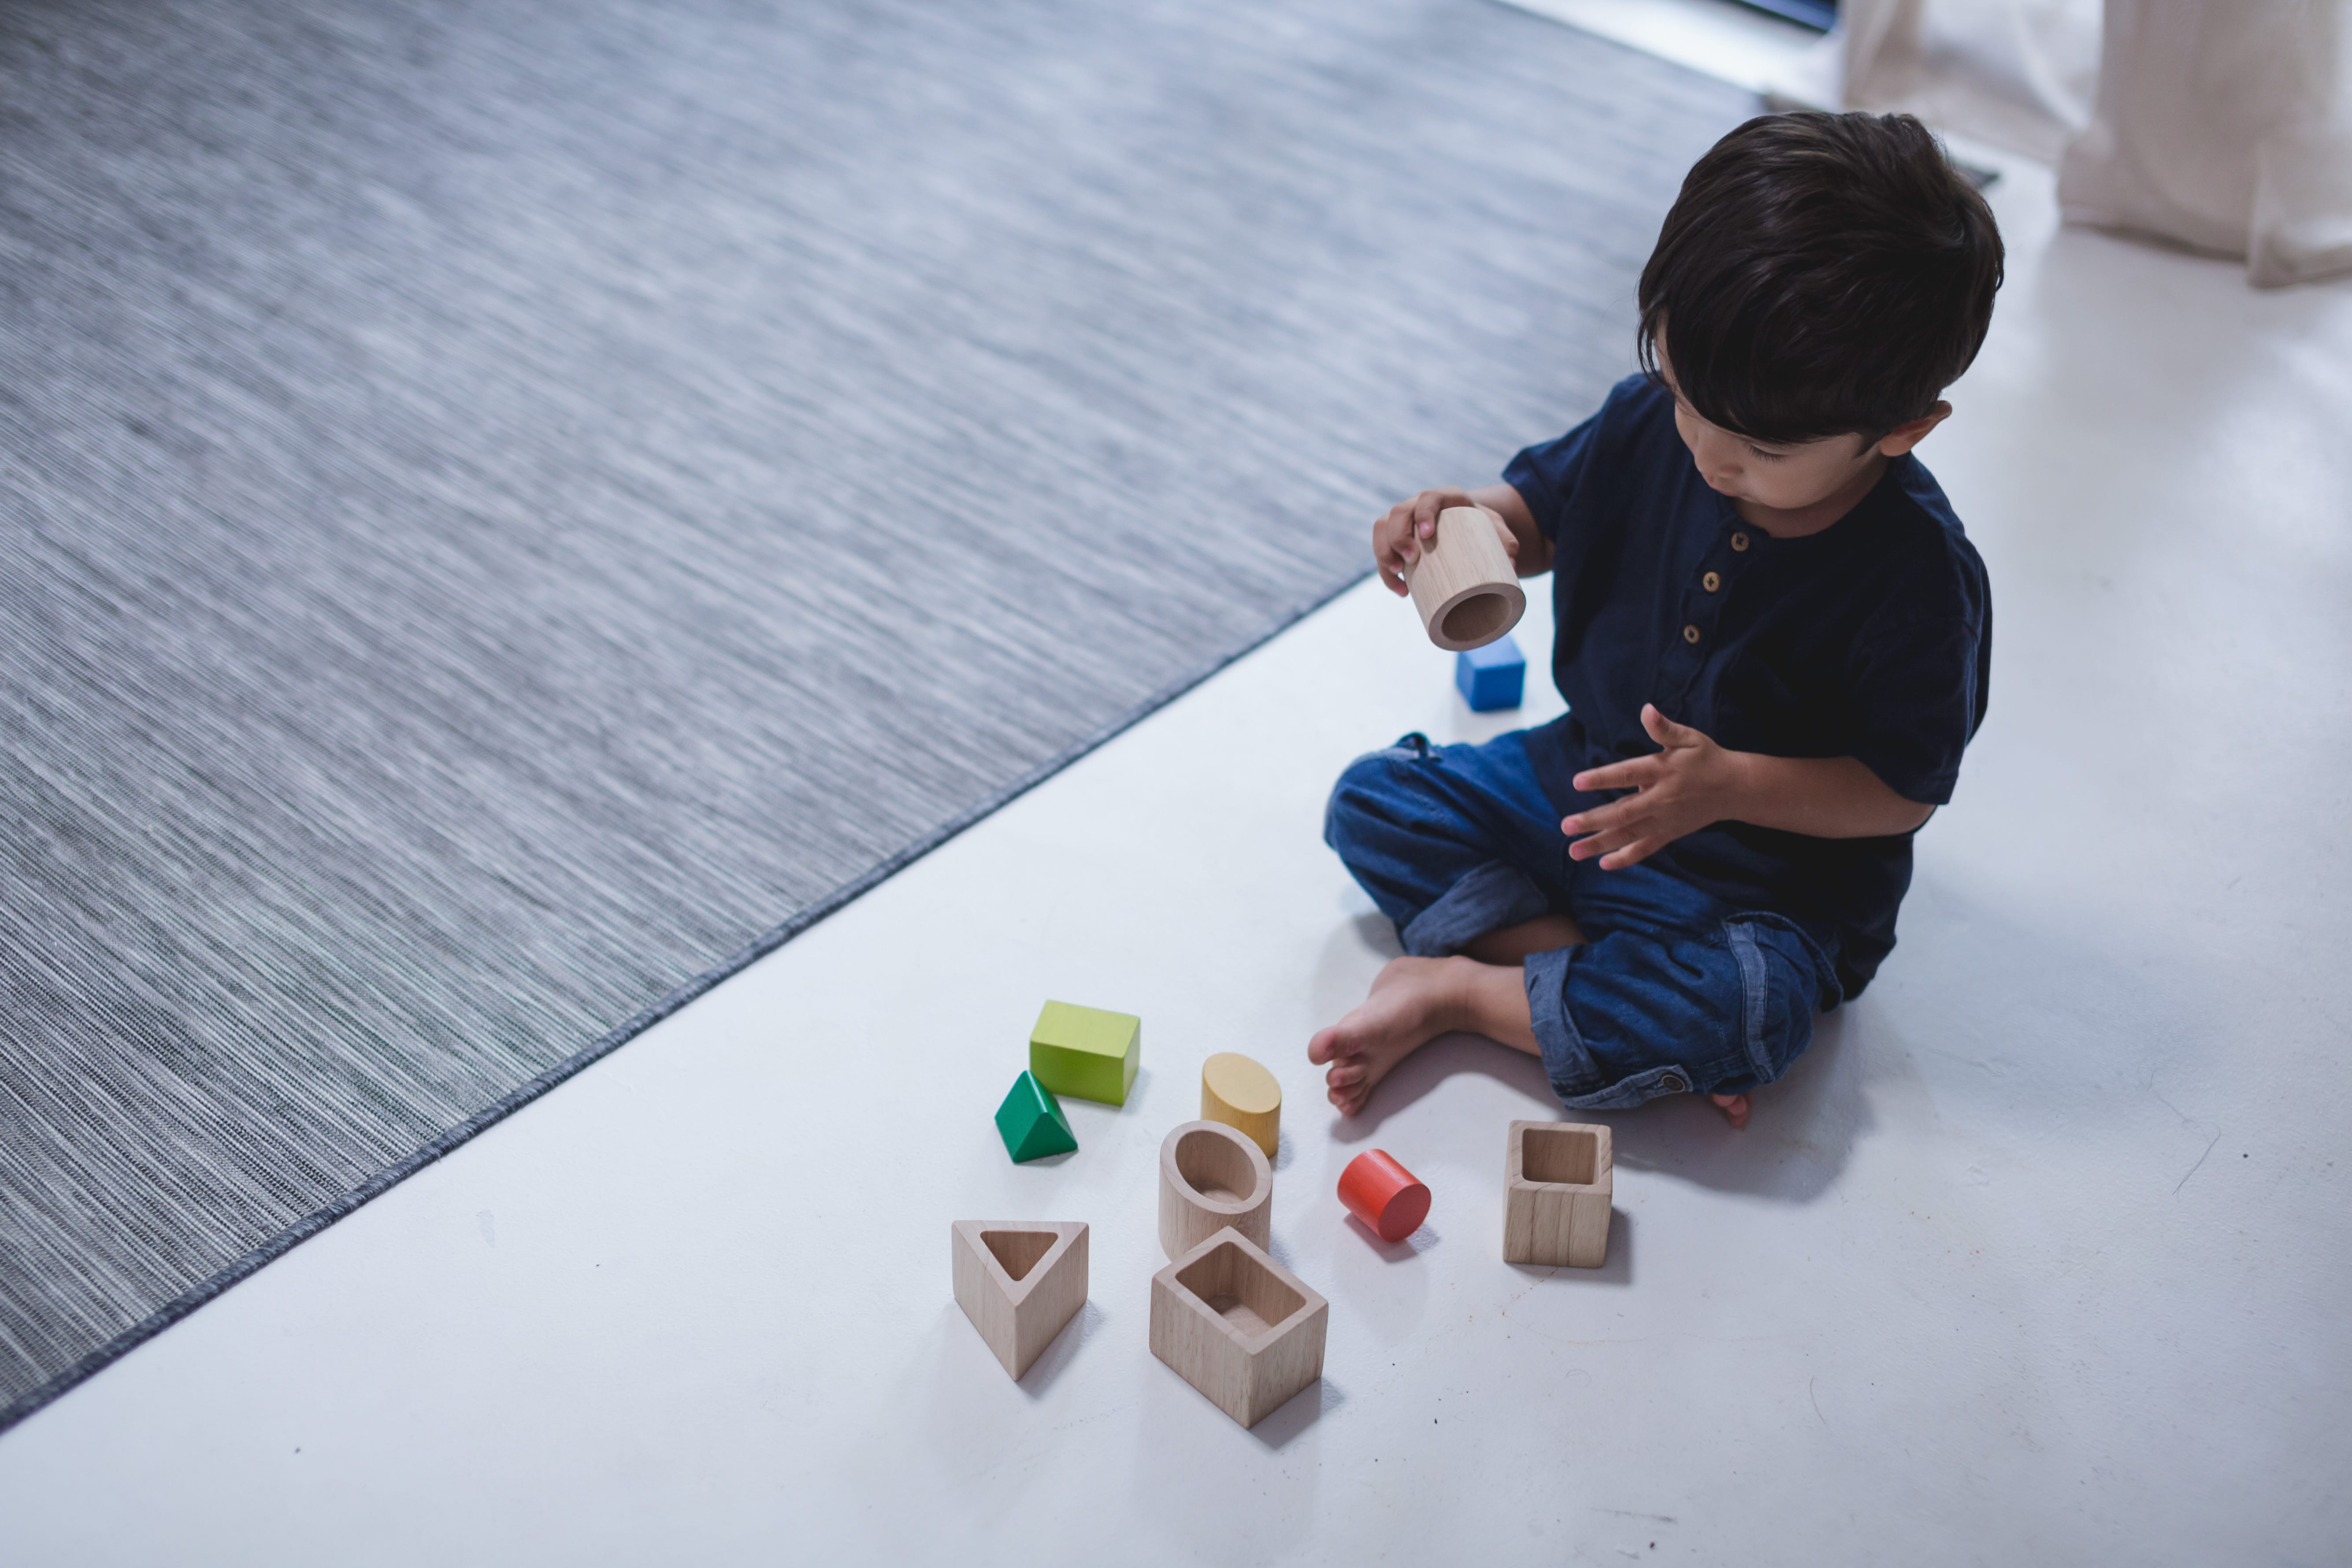 5391_PlanToys_GEO_MATCHING_BLOCKS_Learning_and_Education_Concentration_Coordination_Mathematical_Problem_Solving_Social_2yrs_Wooden_toys_Education_toys_Safety_Toys_Non-toxic_3.jpg